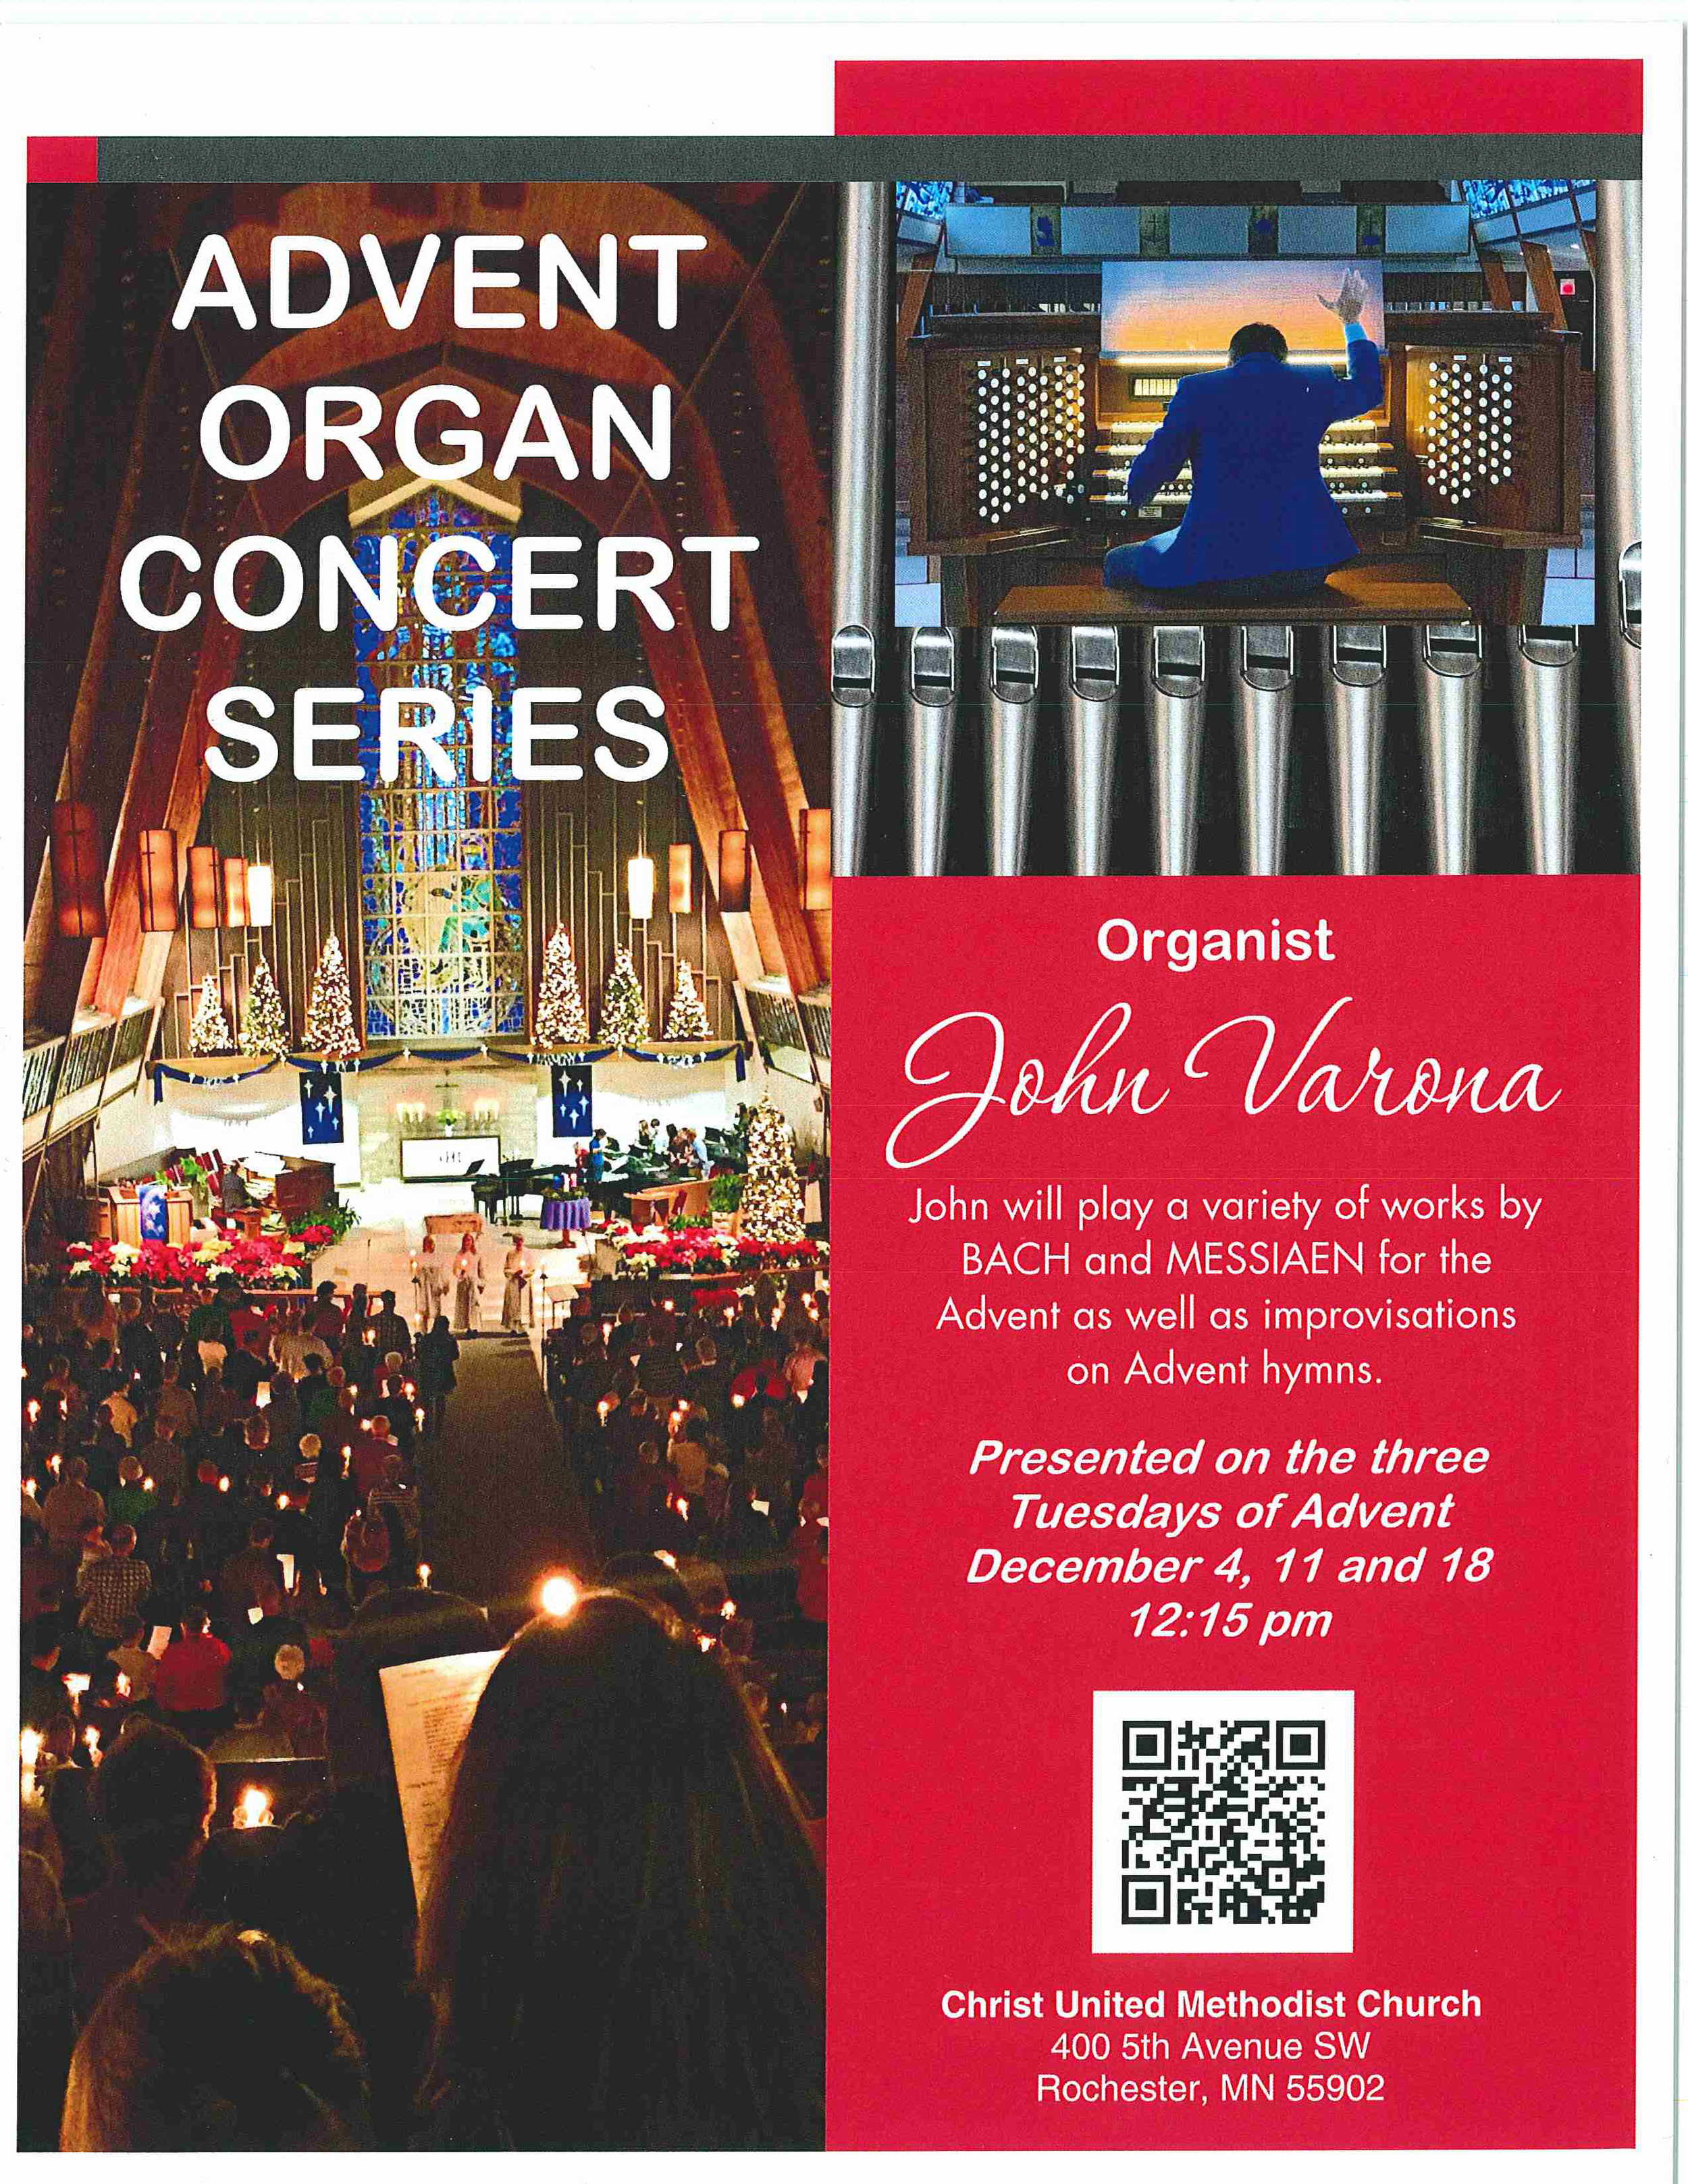 Four Sessions of joyful music starting Tuesday, December 4th in our Sanctuary! Come one and All to a marvelous Advent concert as performed by our organist John Varona and accompanied by the accomplished clarinetist David Townsend. This event promises to be a delightful welcome to this Advent season!